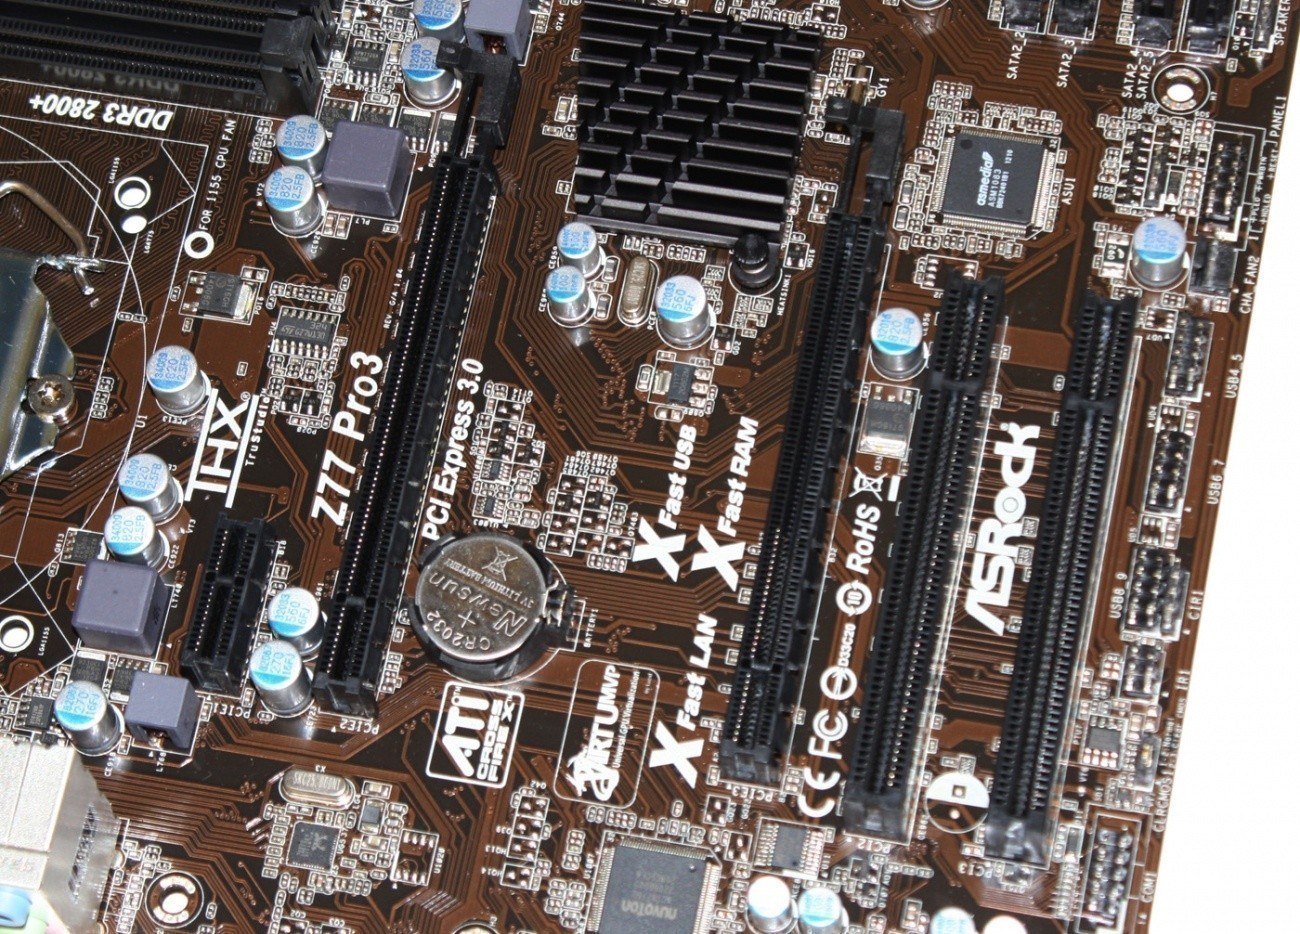 asrock_z77_pro3_intel_z77_motherboard_review